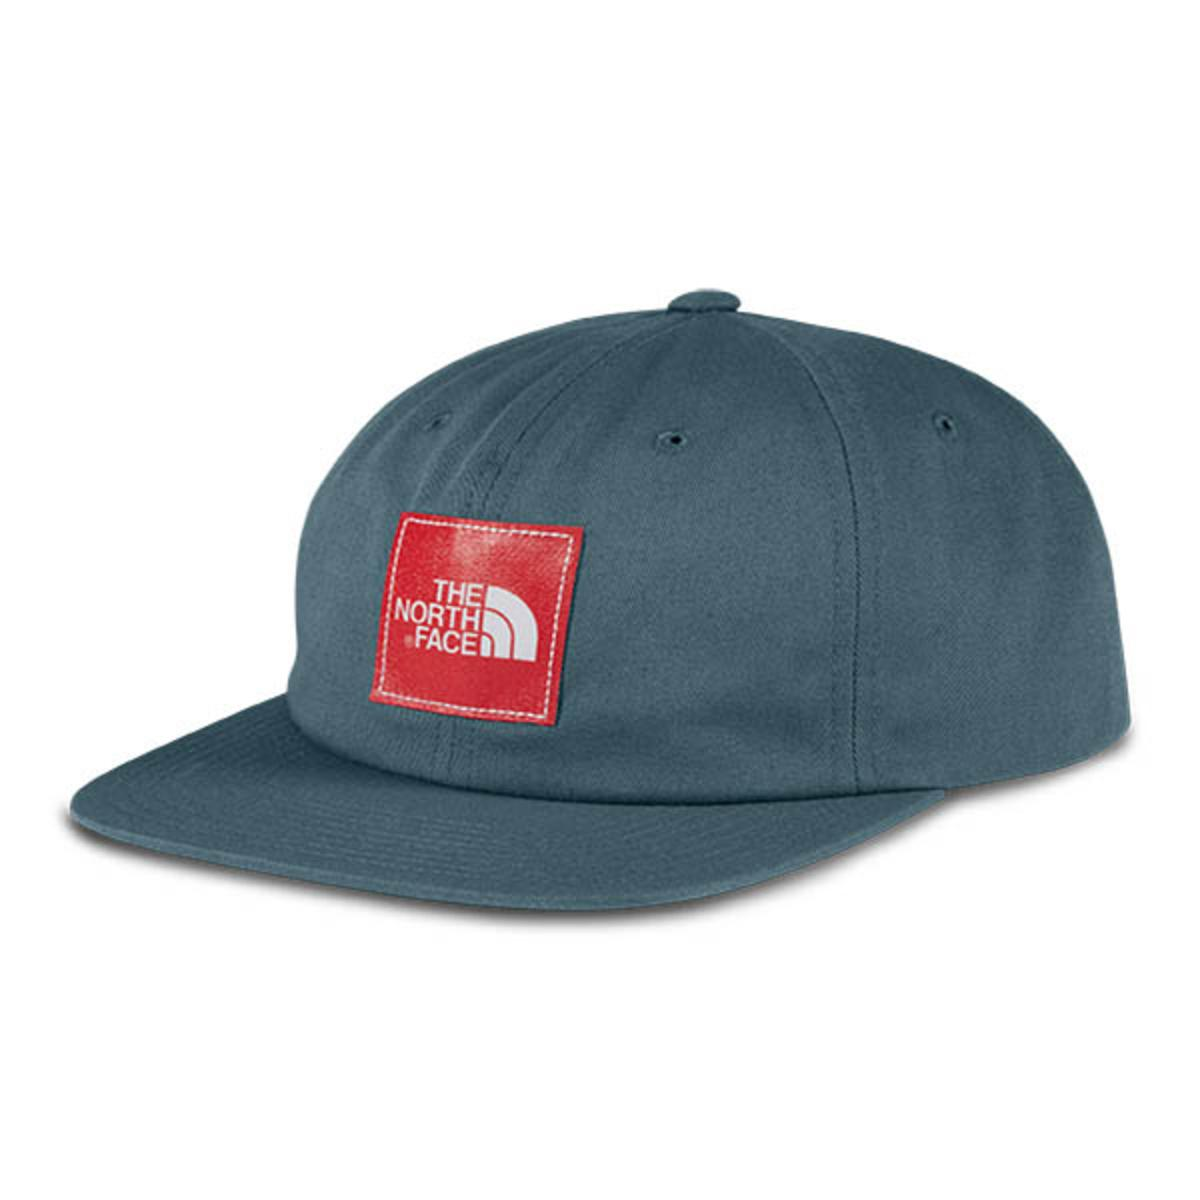 The North Face EL Cap Ball Cap - The Warming Store 709a66c9ba2